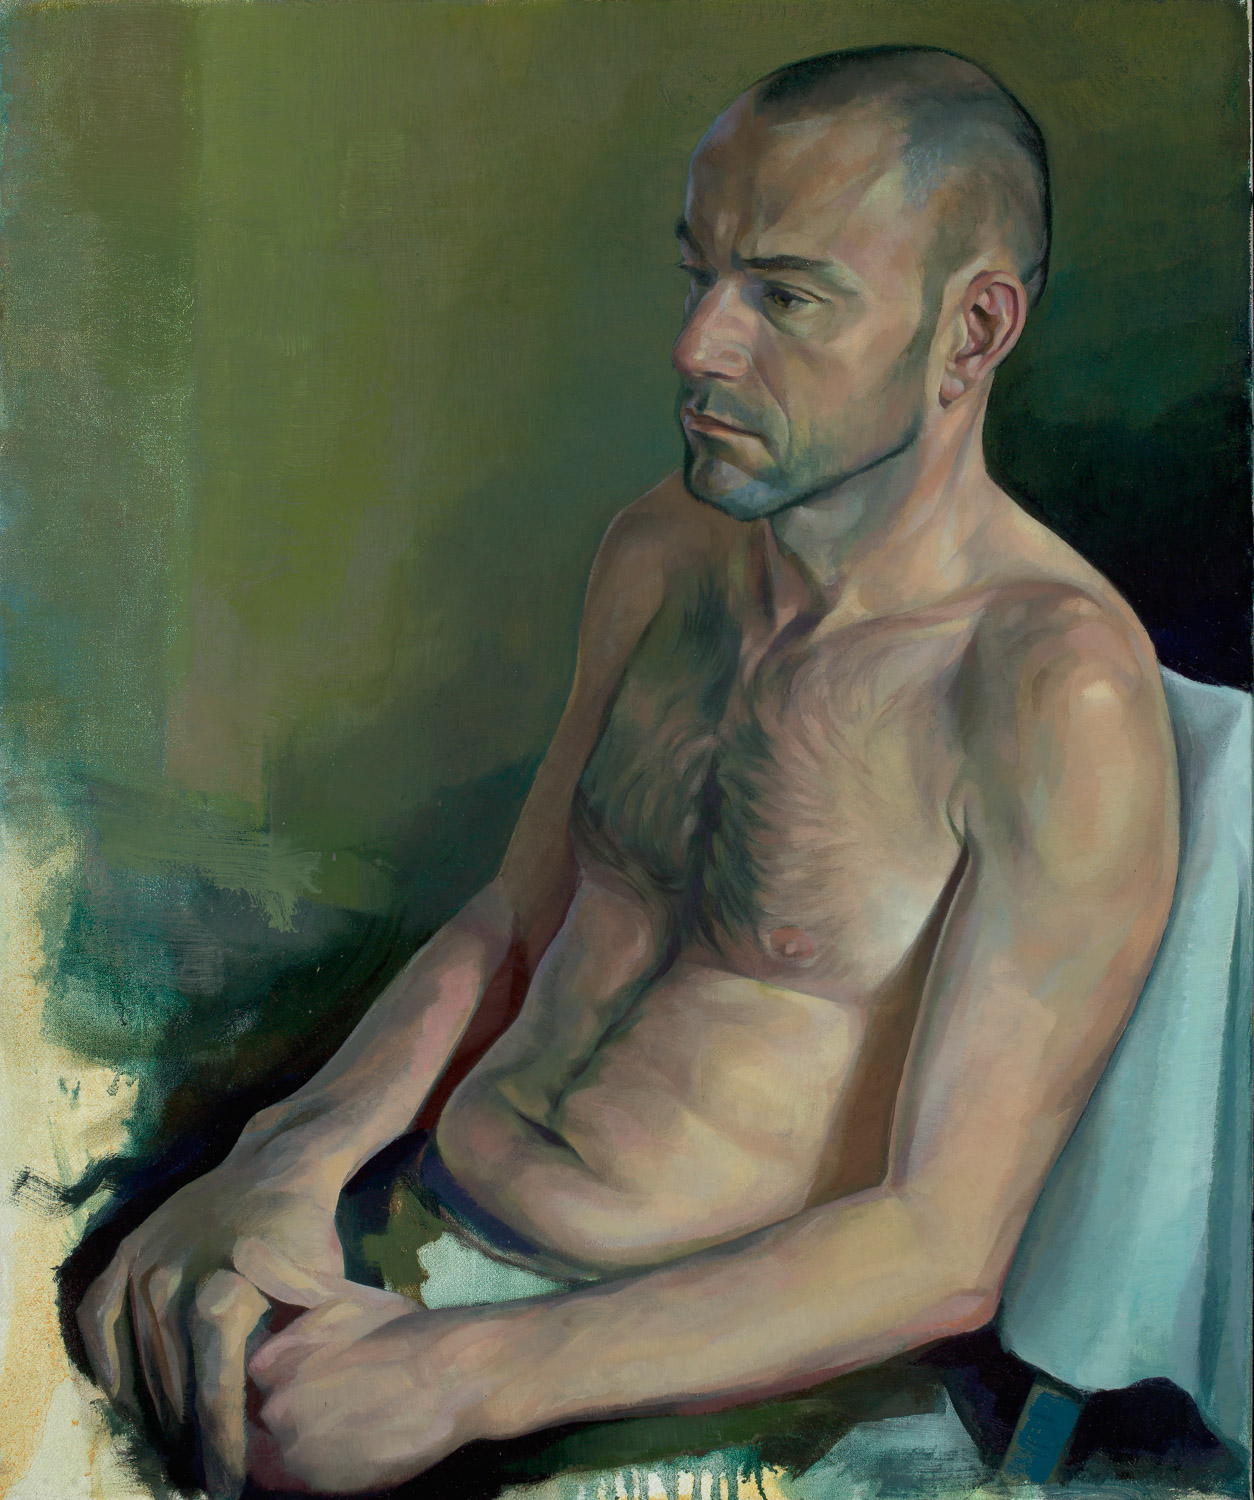 """'Carlo' 70x60cm (28""""x24"""")oil on linen. Private collection."""